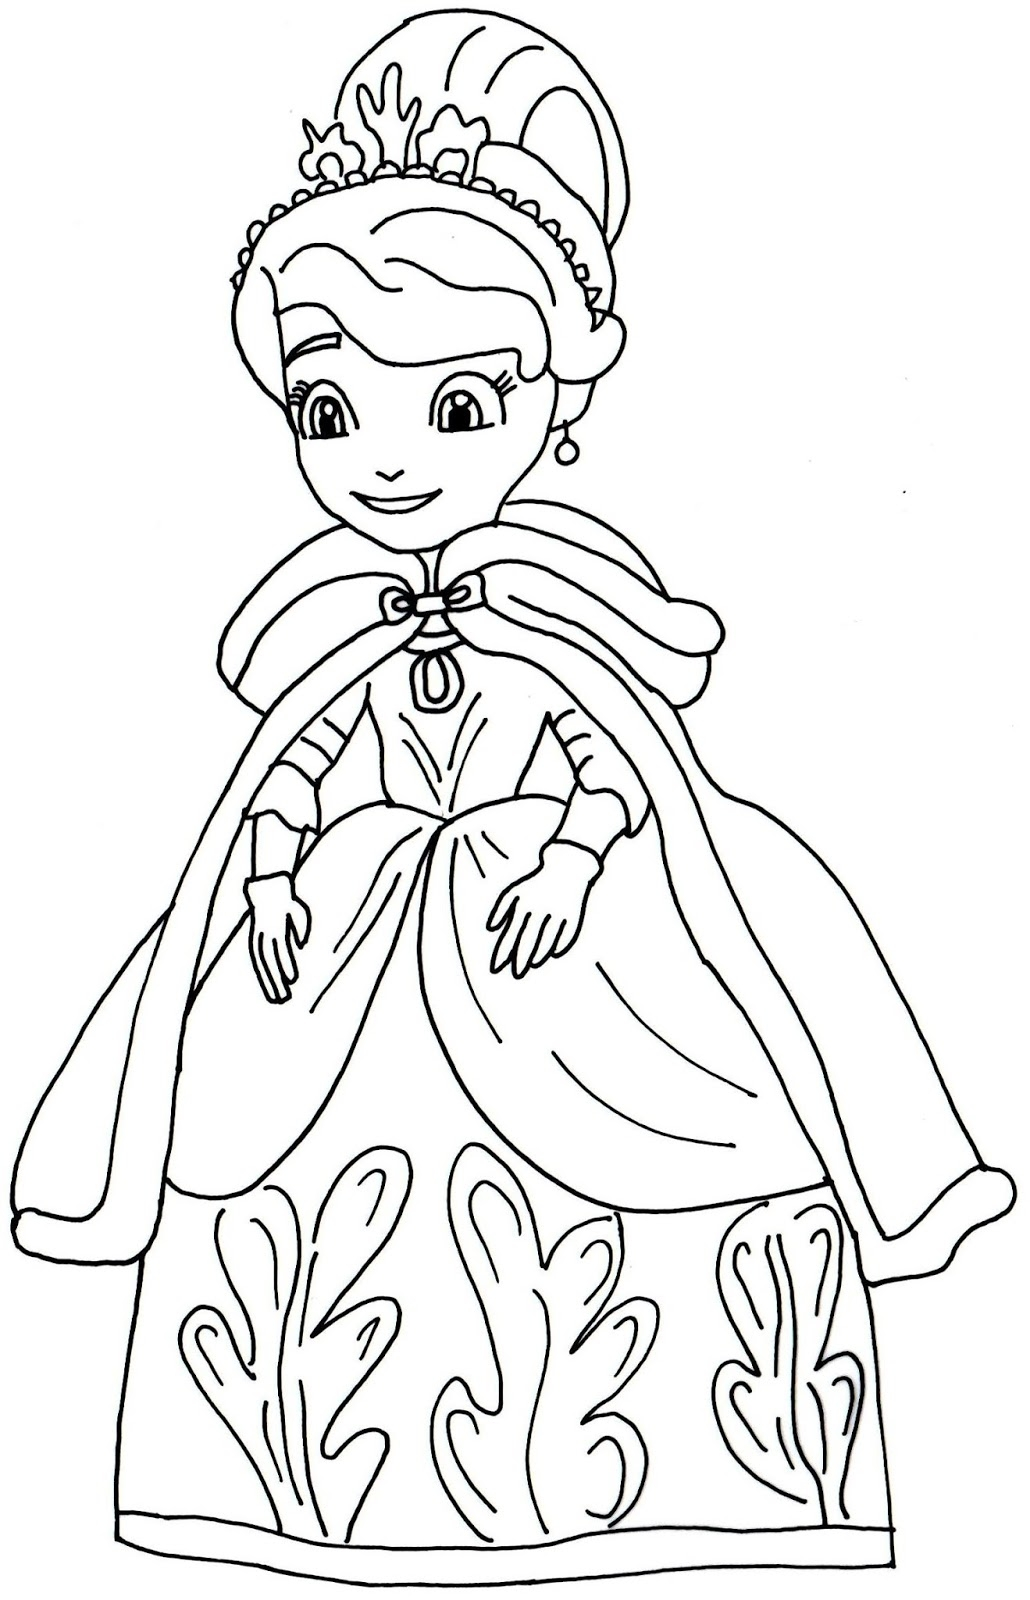 23 sofia Coloring Pages Compilation FREE COLORING PAGES Part 2